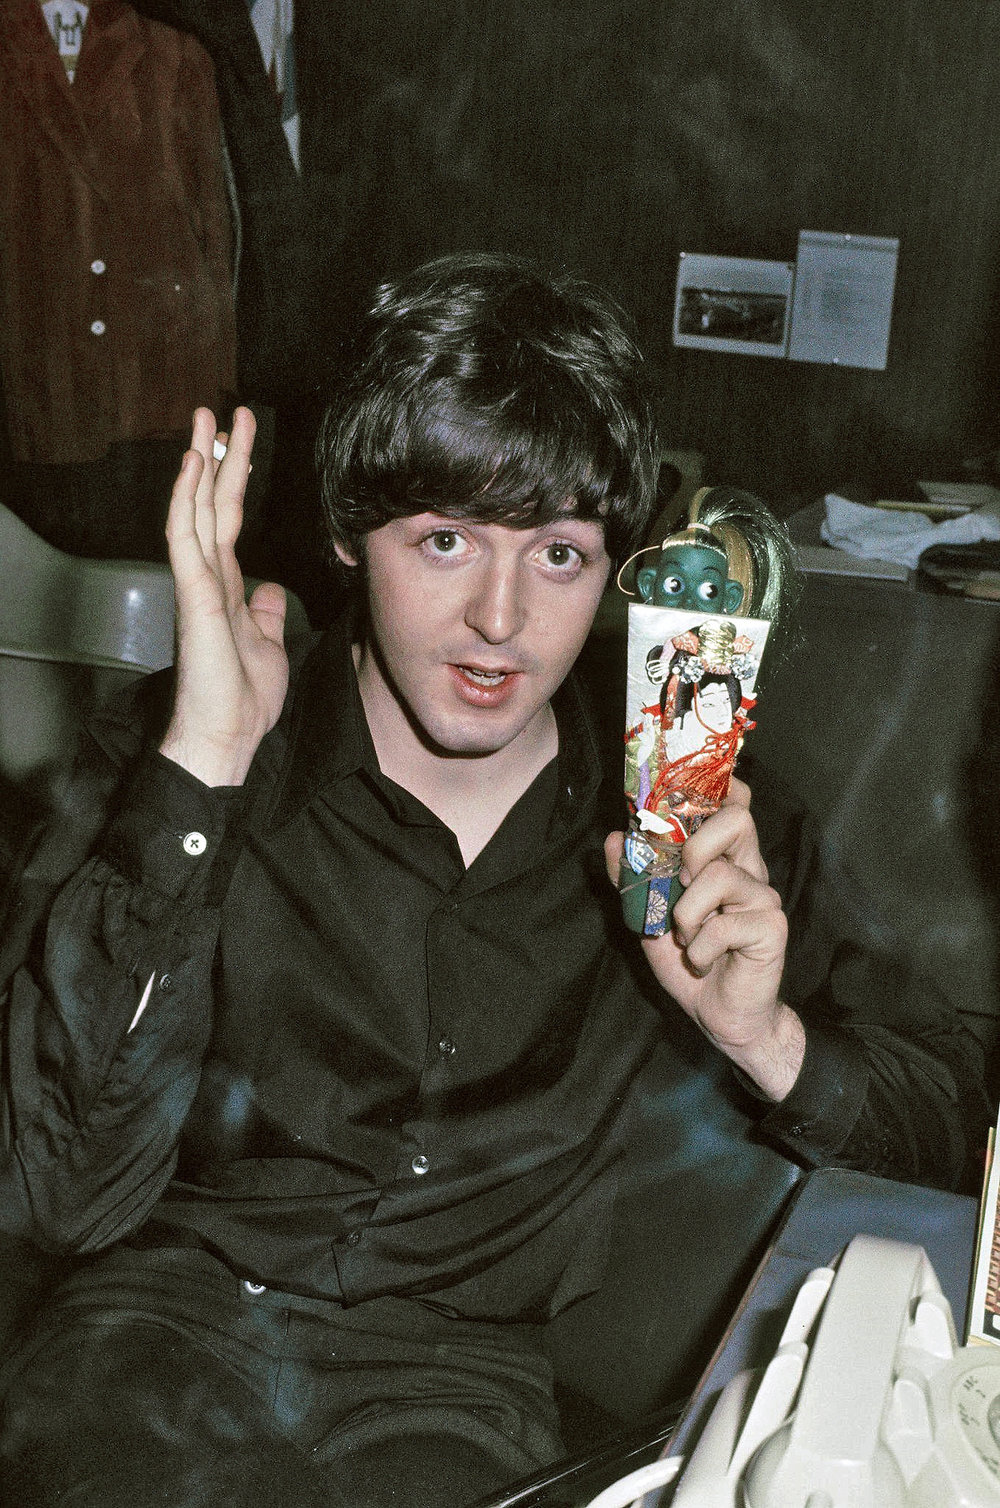 Paul McCartney in the Presidential Suite of the Tokyo Hilton, June 1966.